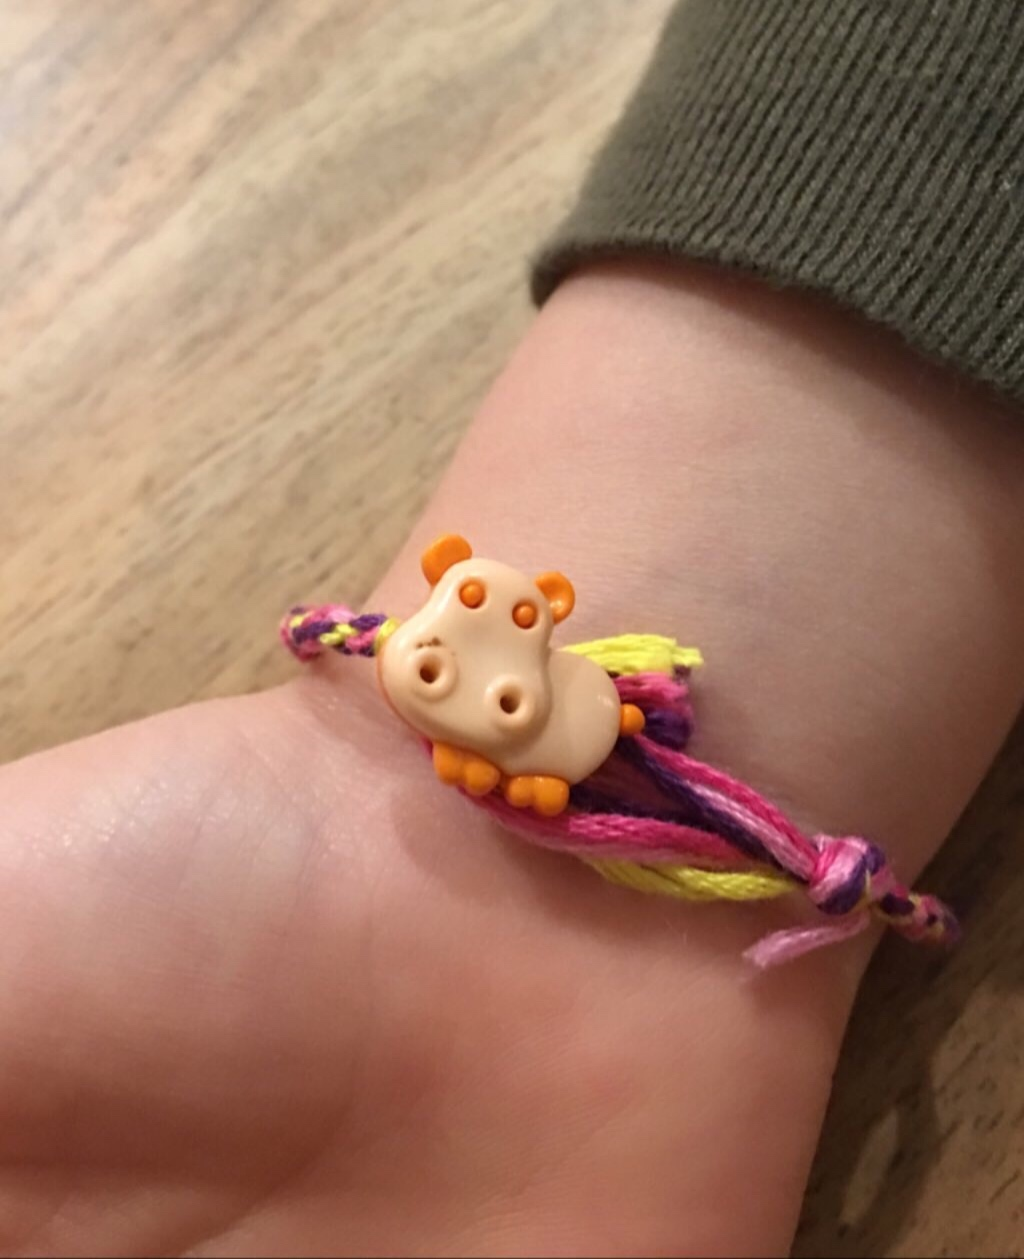 This is a little hippo button with an opening on the reverse that the bracelet was tied to. The slip knot went over the hippo and is adjustable.